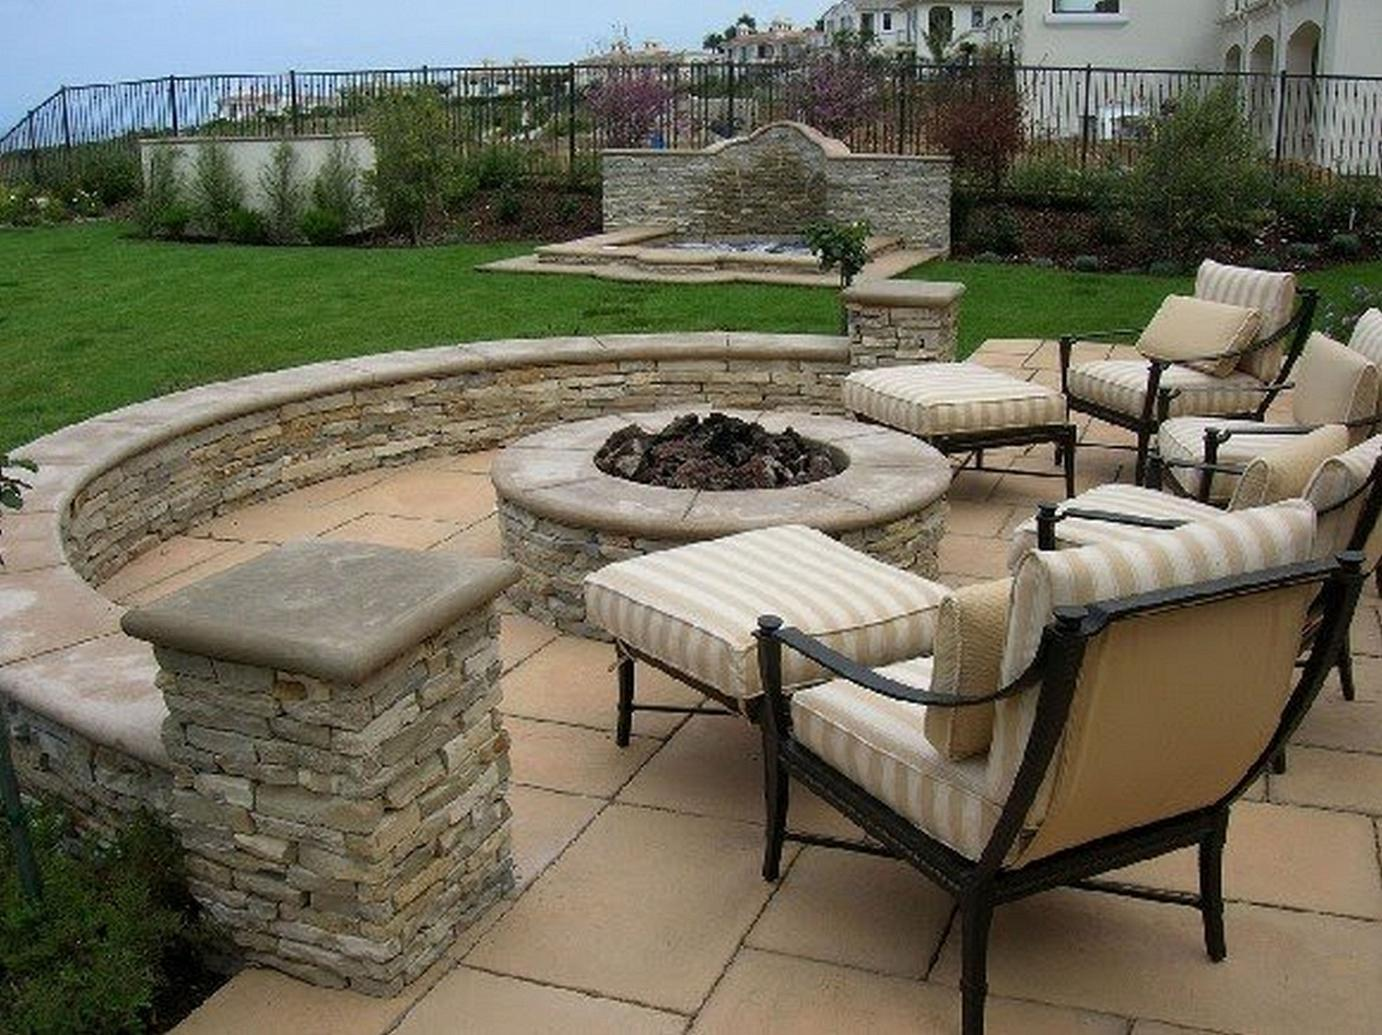 Backyard patio ideas for small spaces large and for Decorating small patio spaces